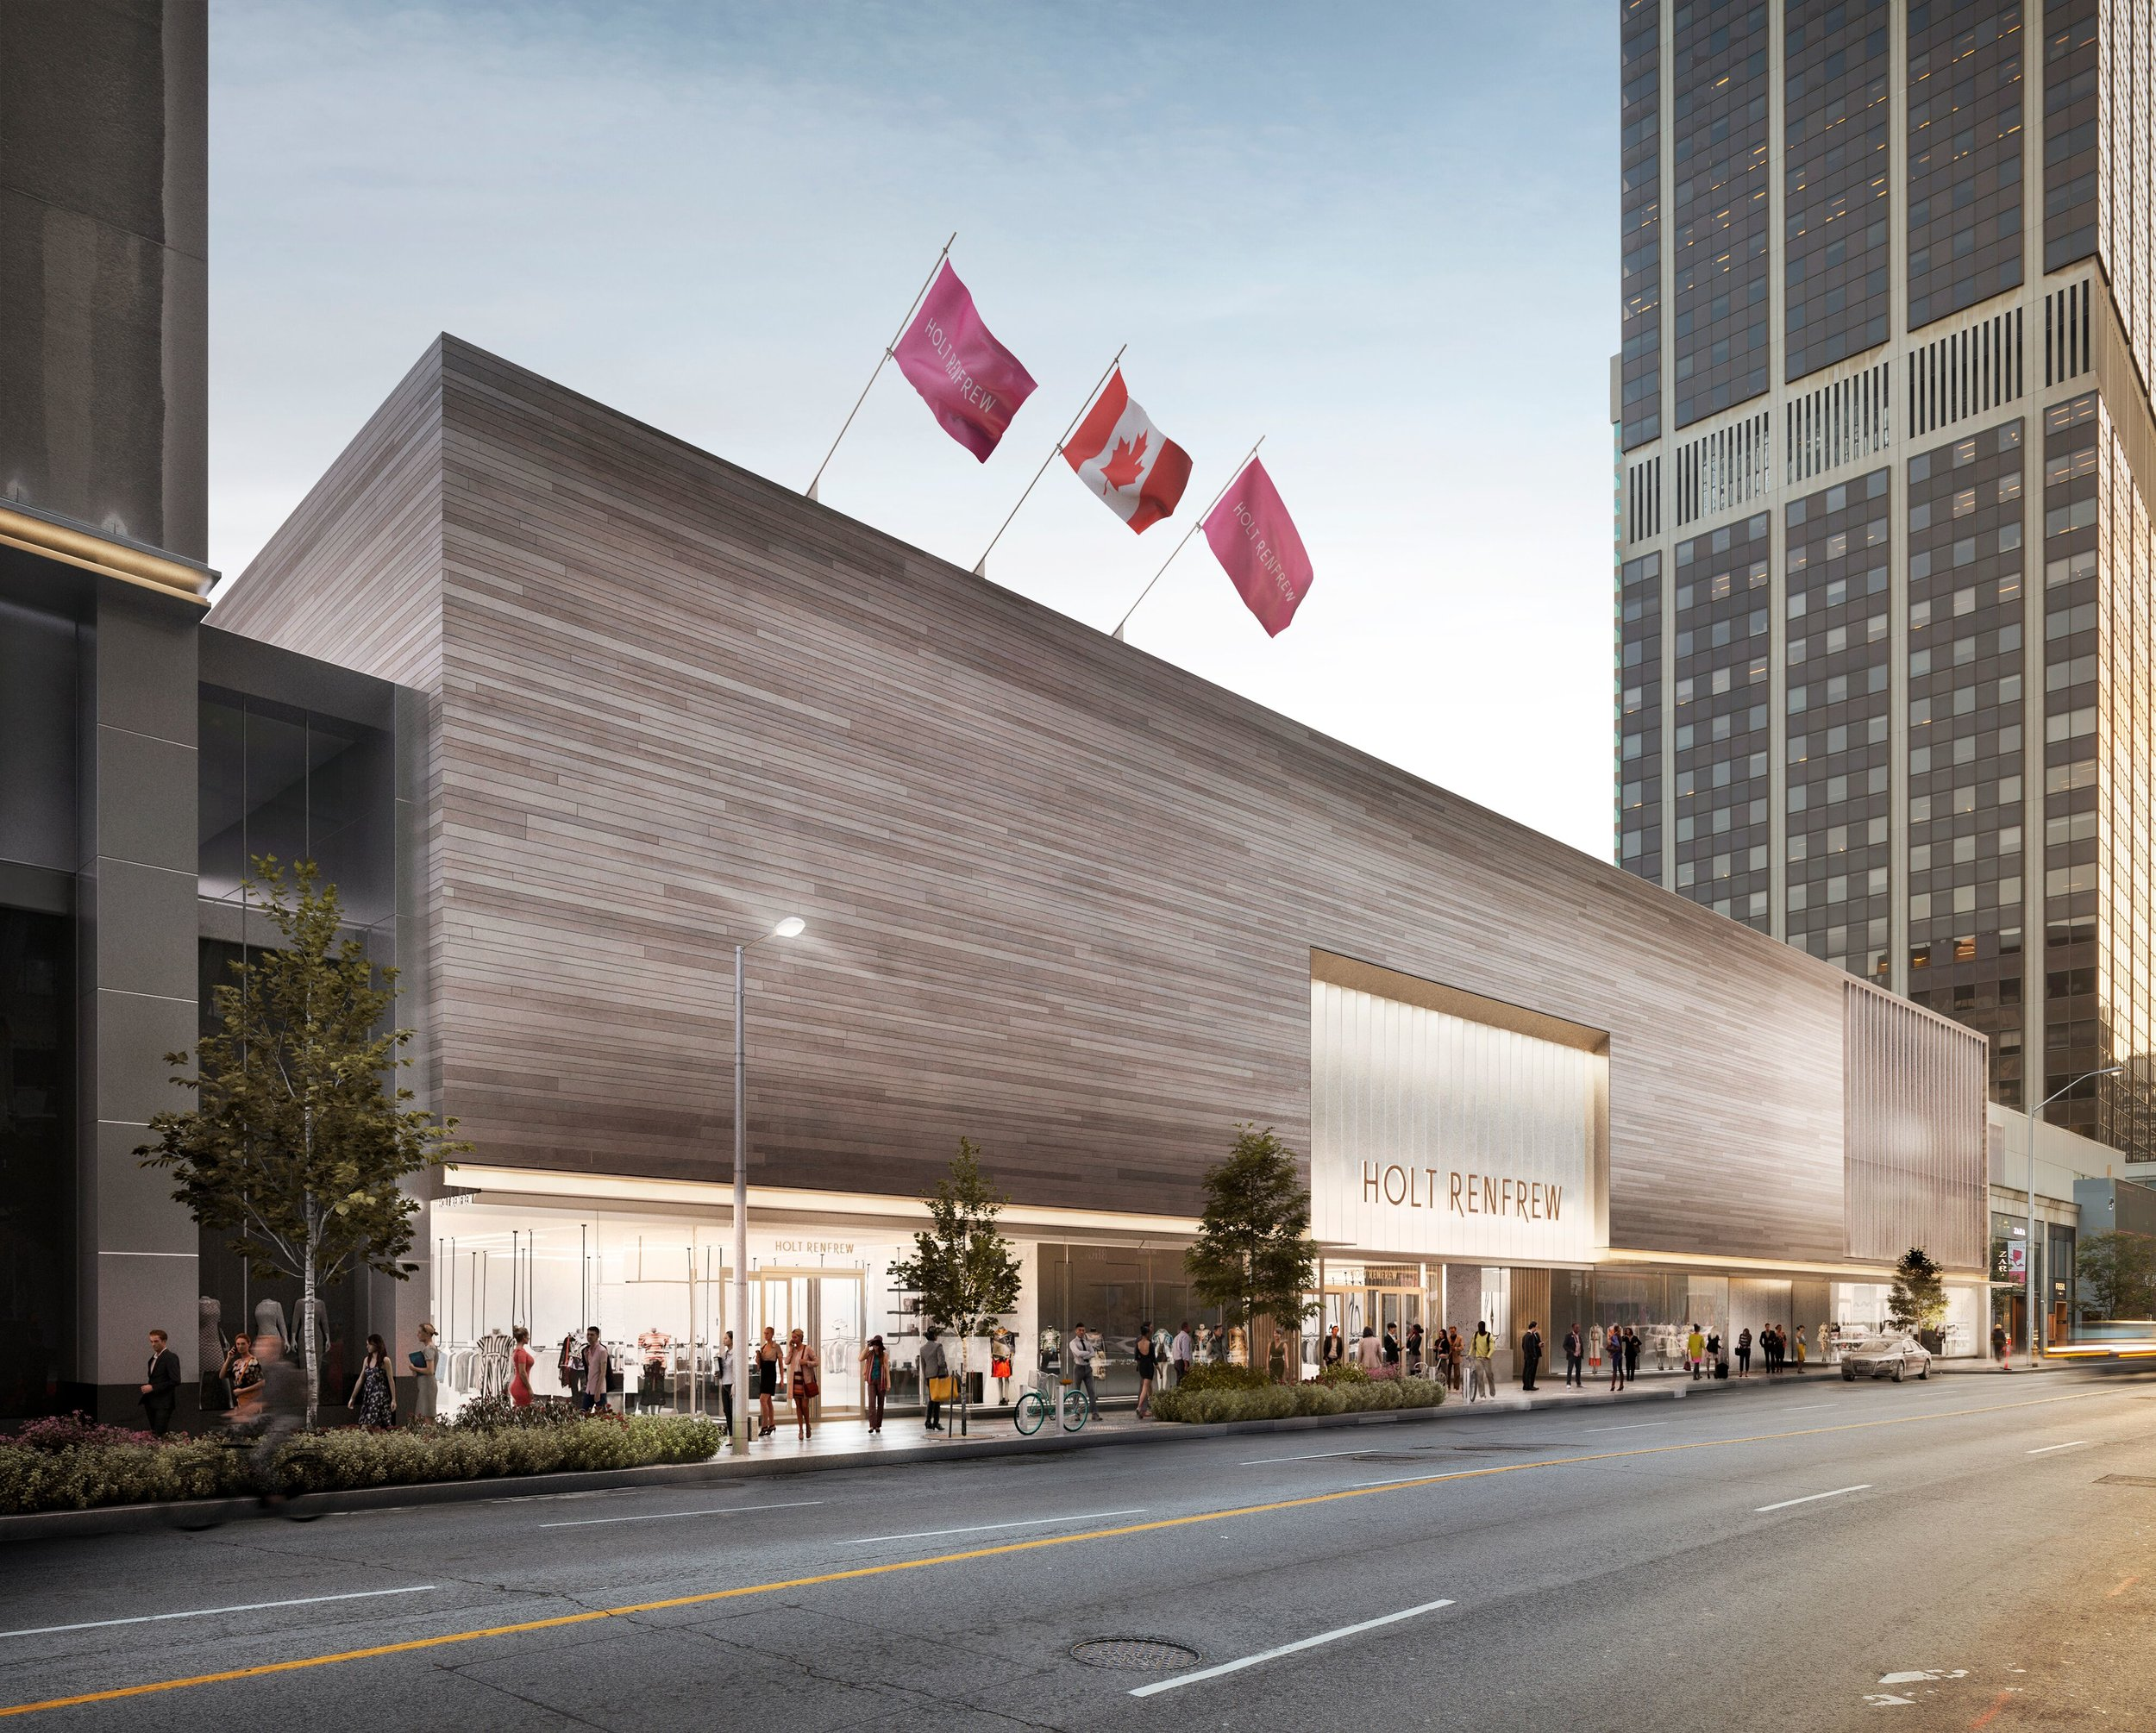 The Holt Renfrew store, which anchors the Holt Renfrew Centre at 50 Bloor Street West where the new Chanel fragrance and Beauty Boutique is located, will see an overhaul that includes renovated mall interiors, a renovated Holt Renfrew anchor, and a new shopping centre facade. Rendering: Gensler/Holt Renfrew.